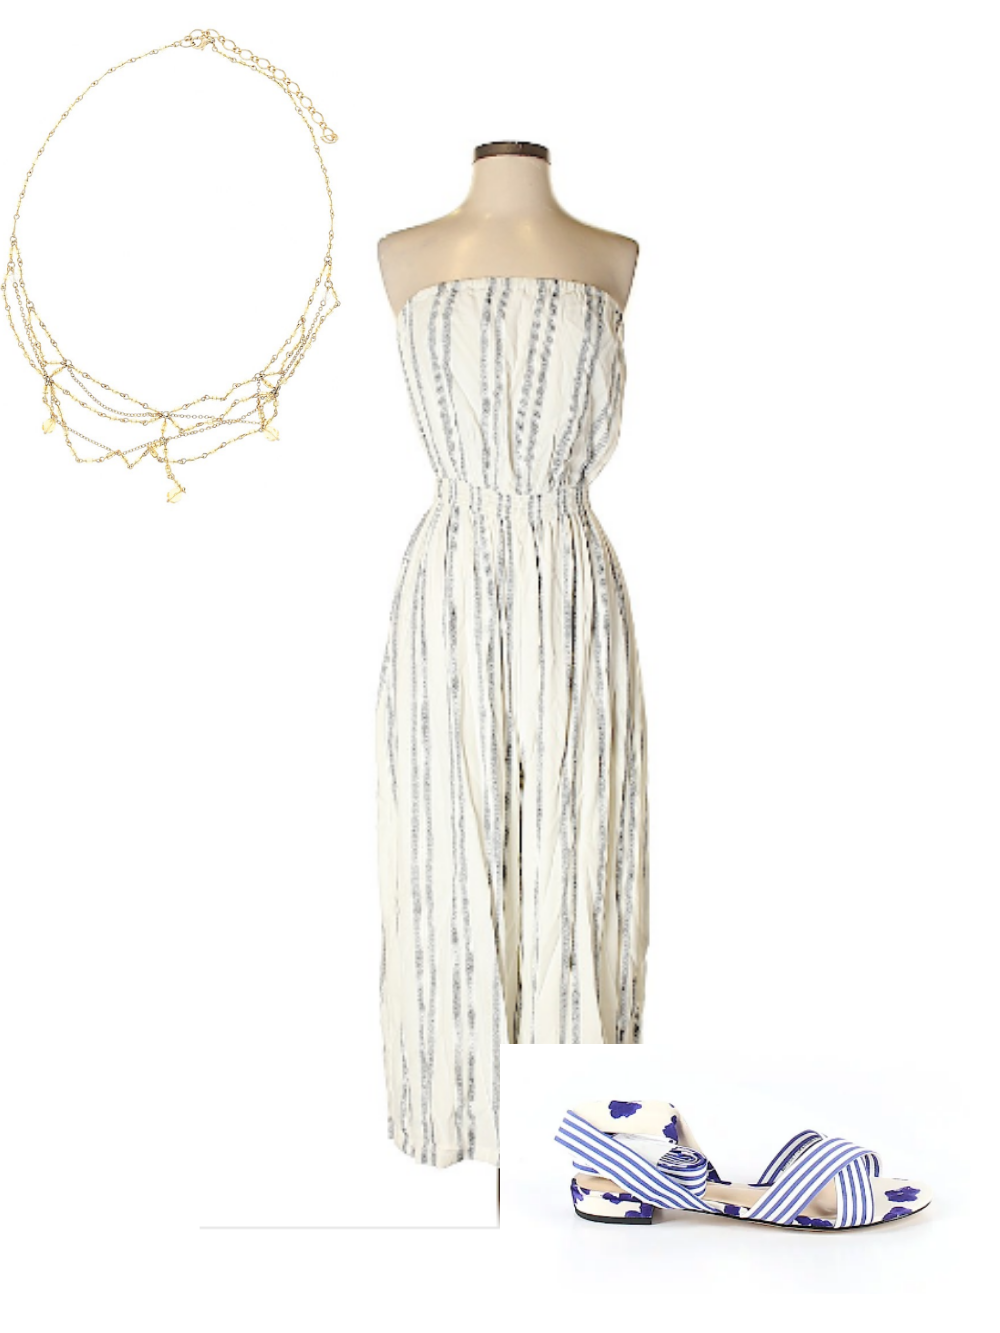 Striped white and blue jumpsuit with white sandals—all white outfit for fourth of july